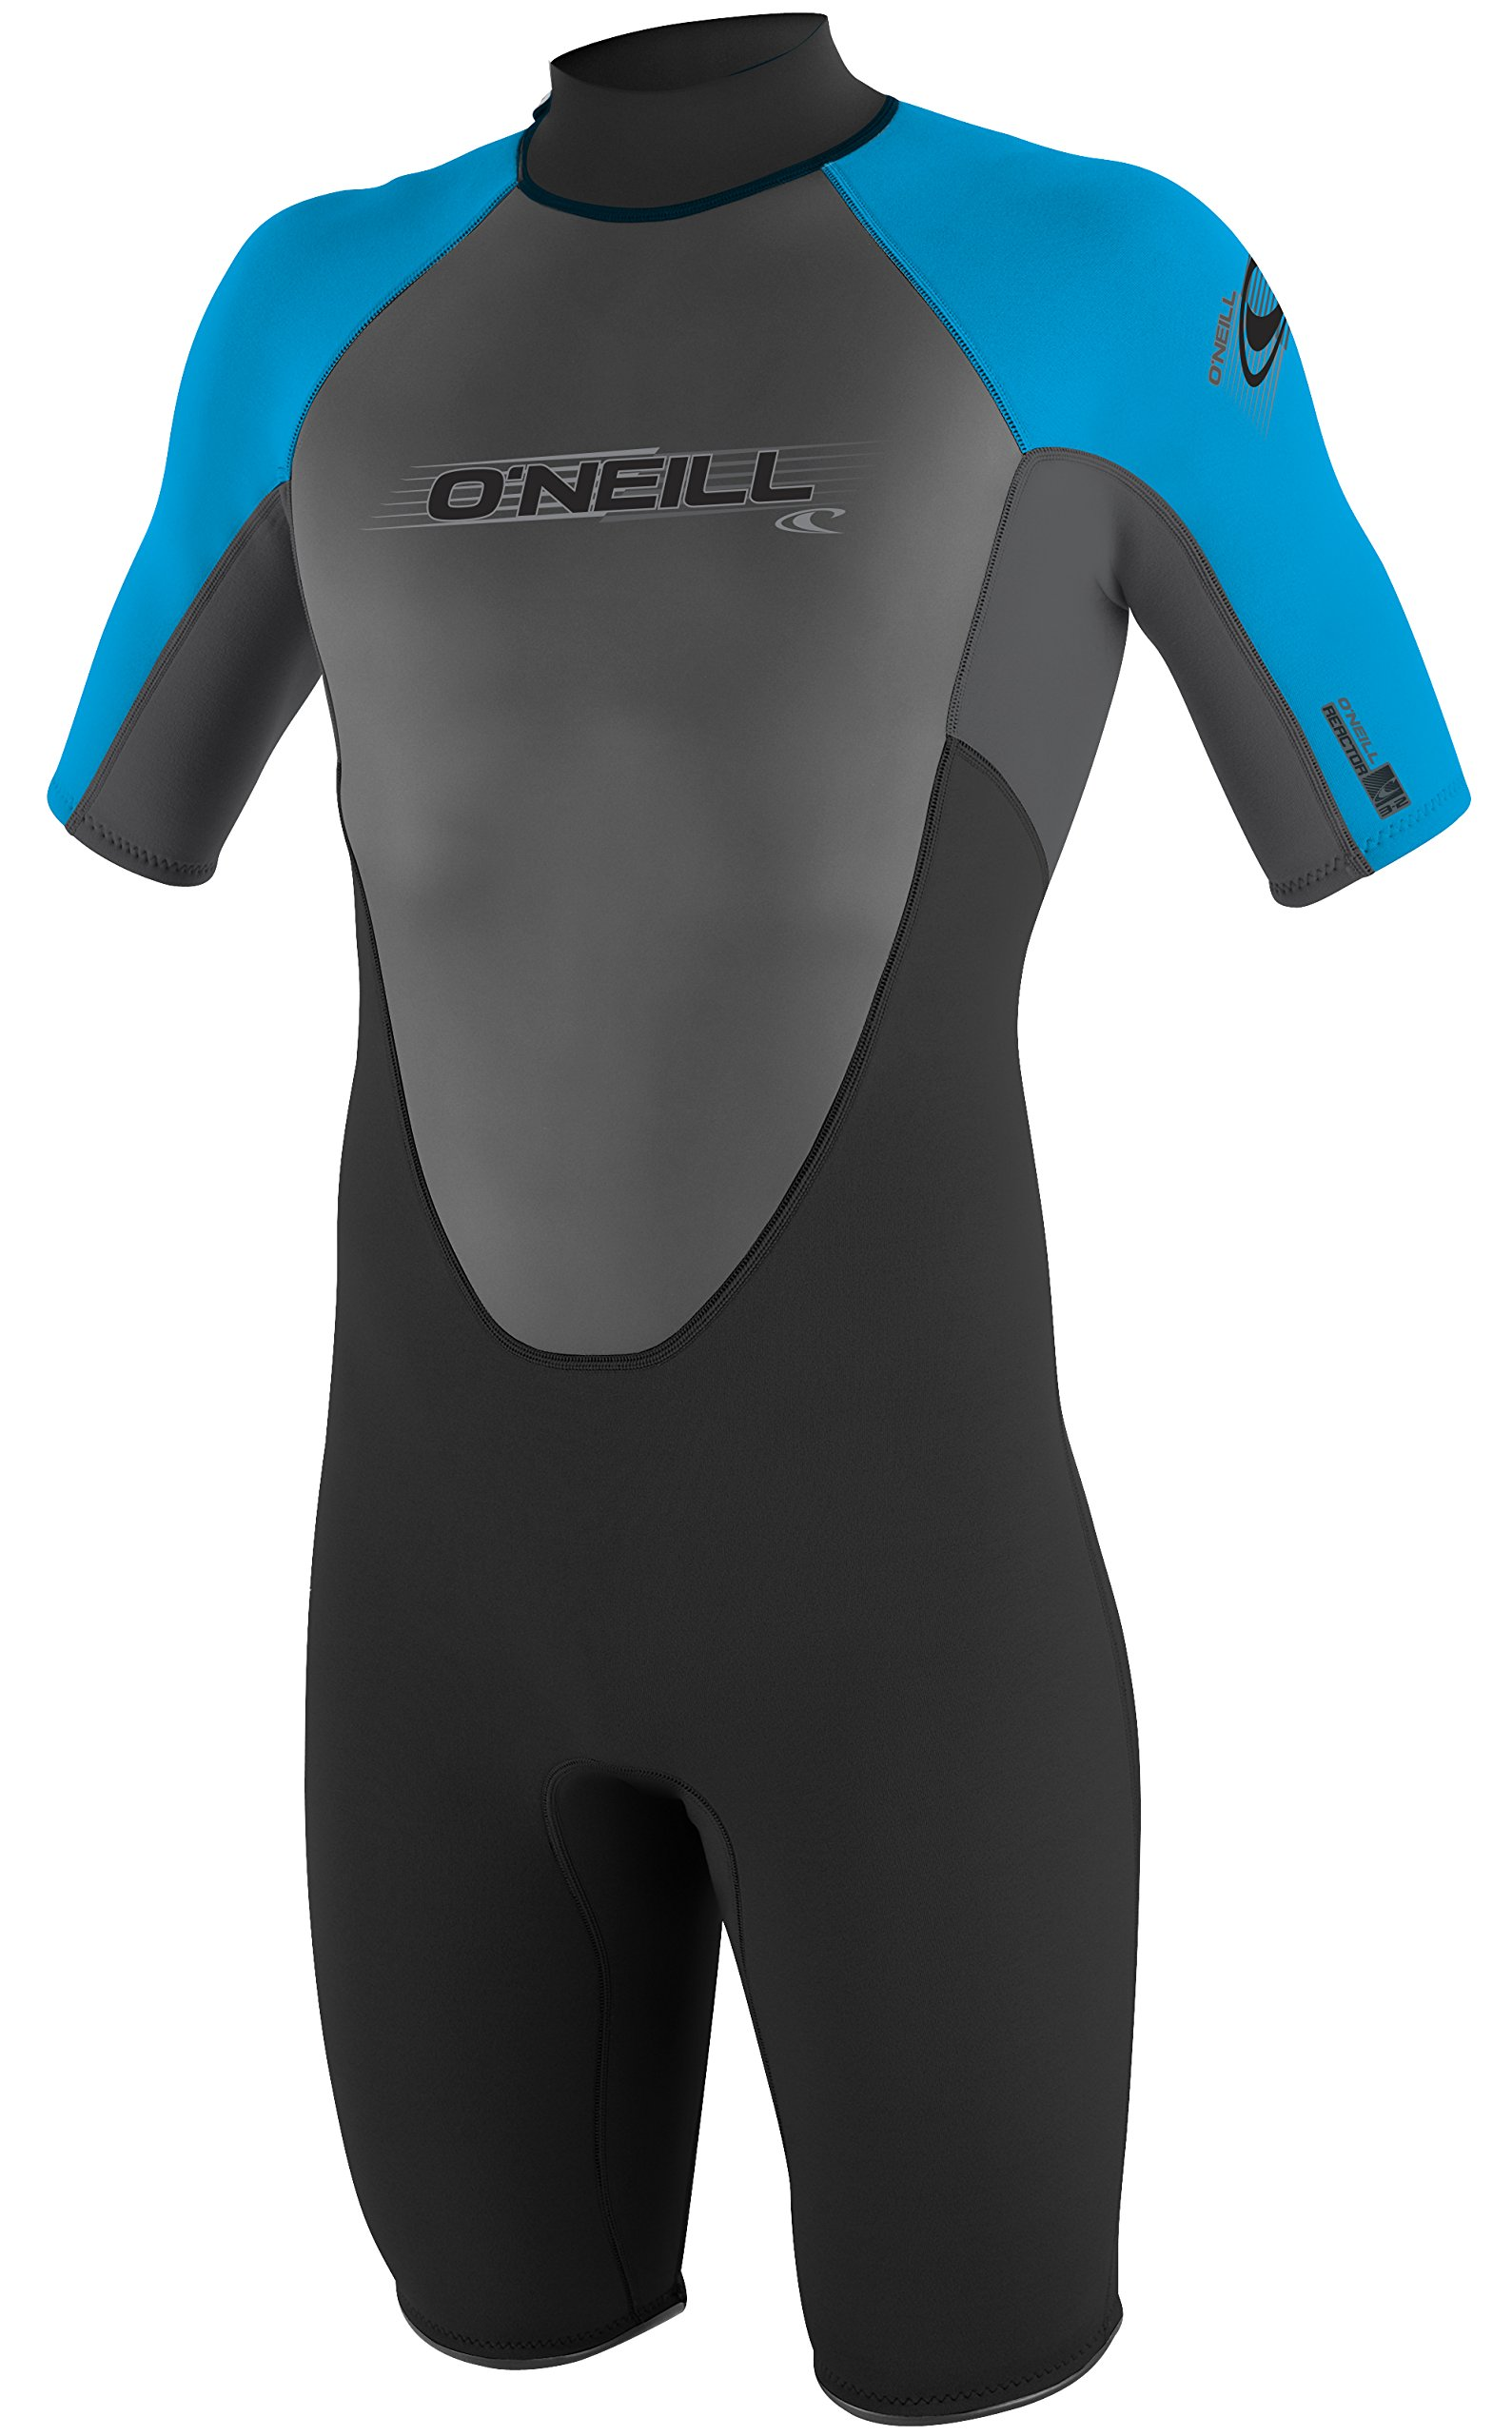 O'Neill Wetsuits Men's 2mm Reactor Spring Suit, Black Smoke Tahiti, Medium